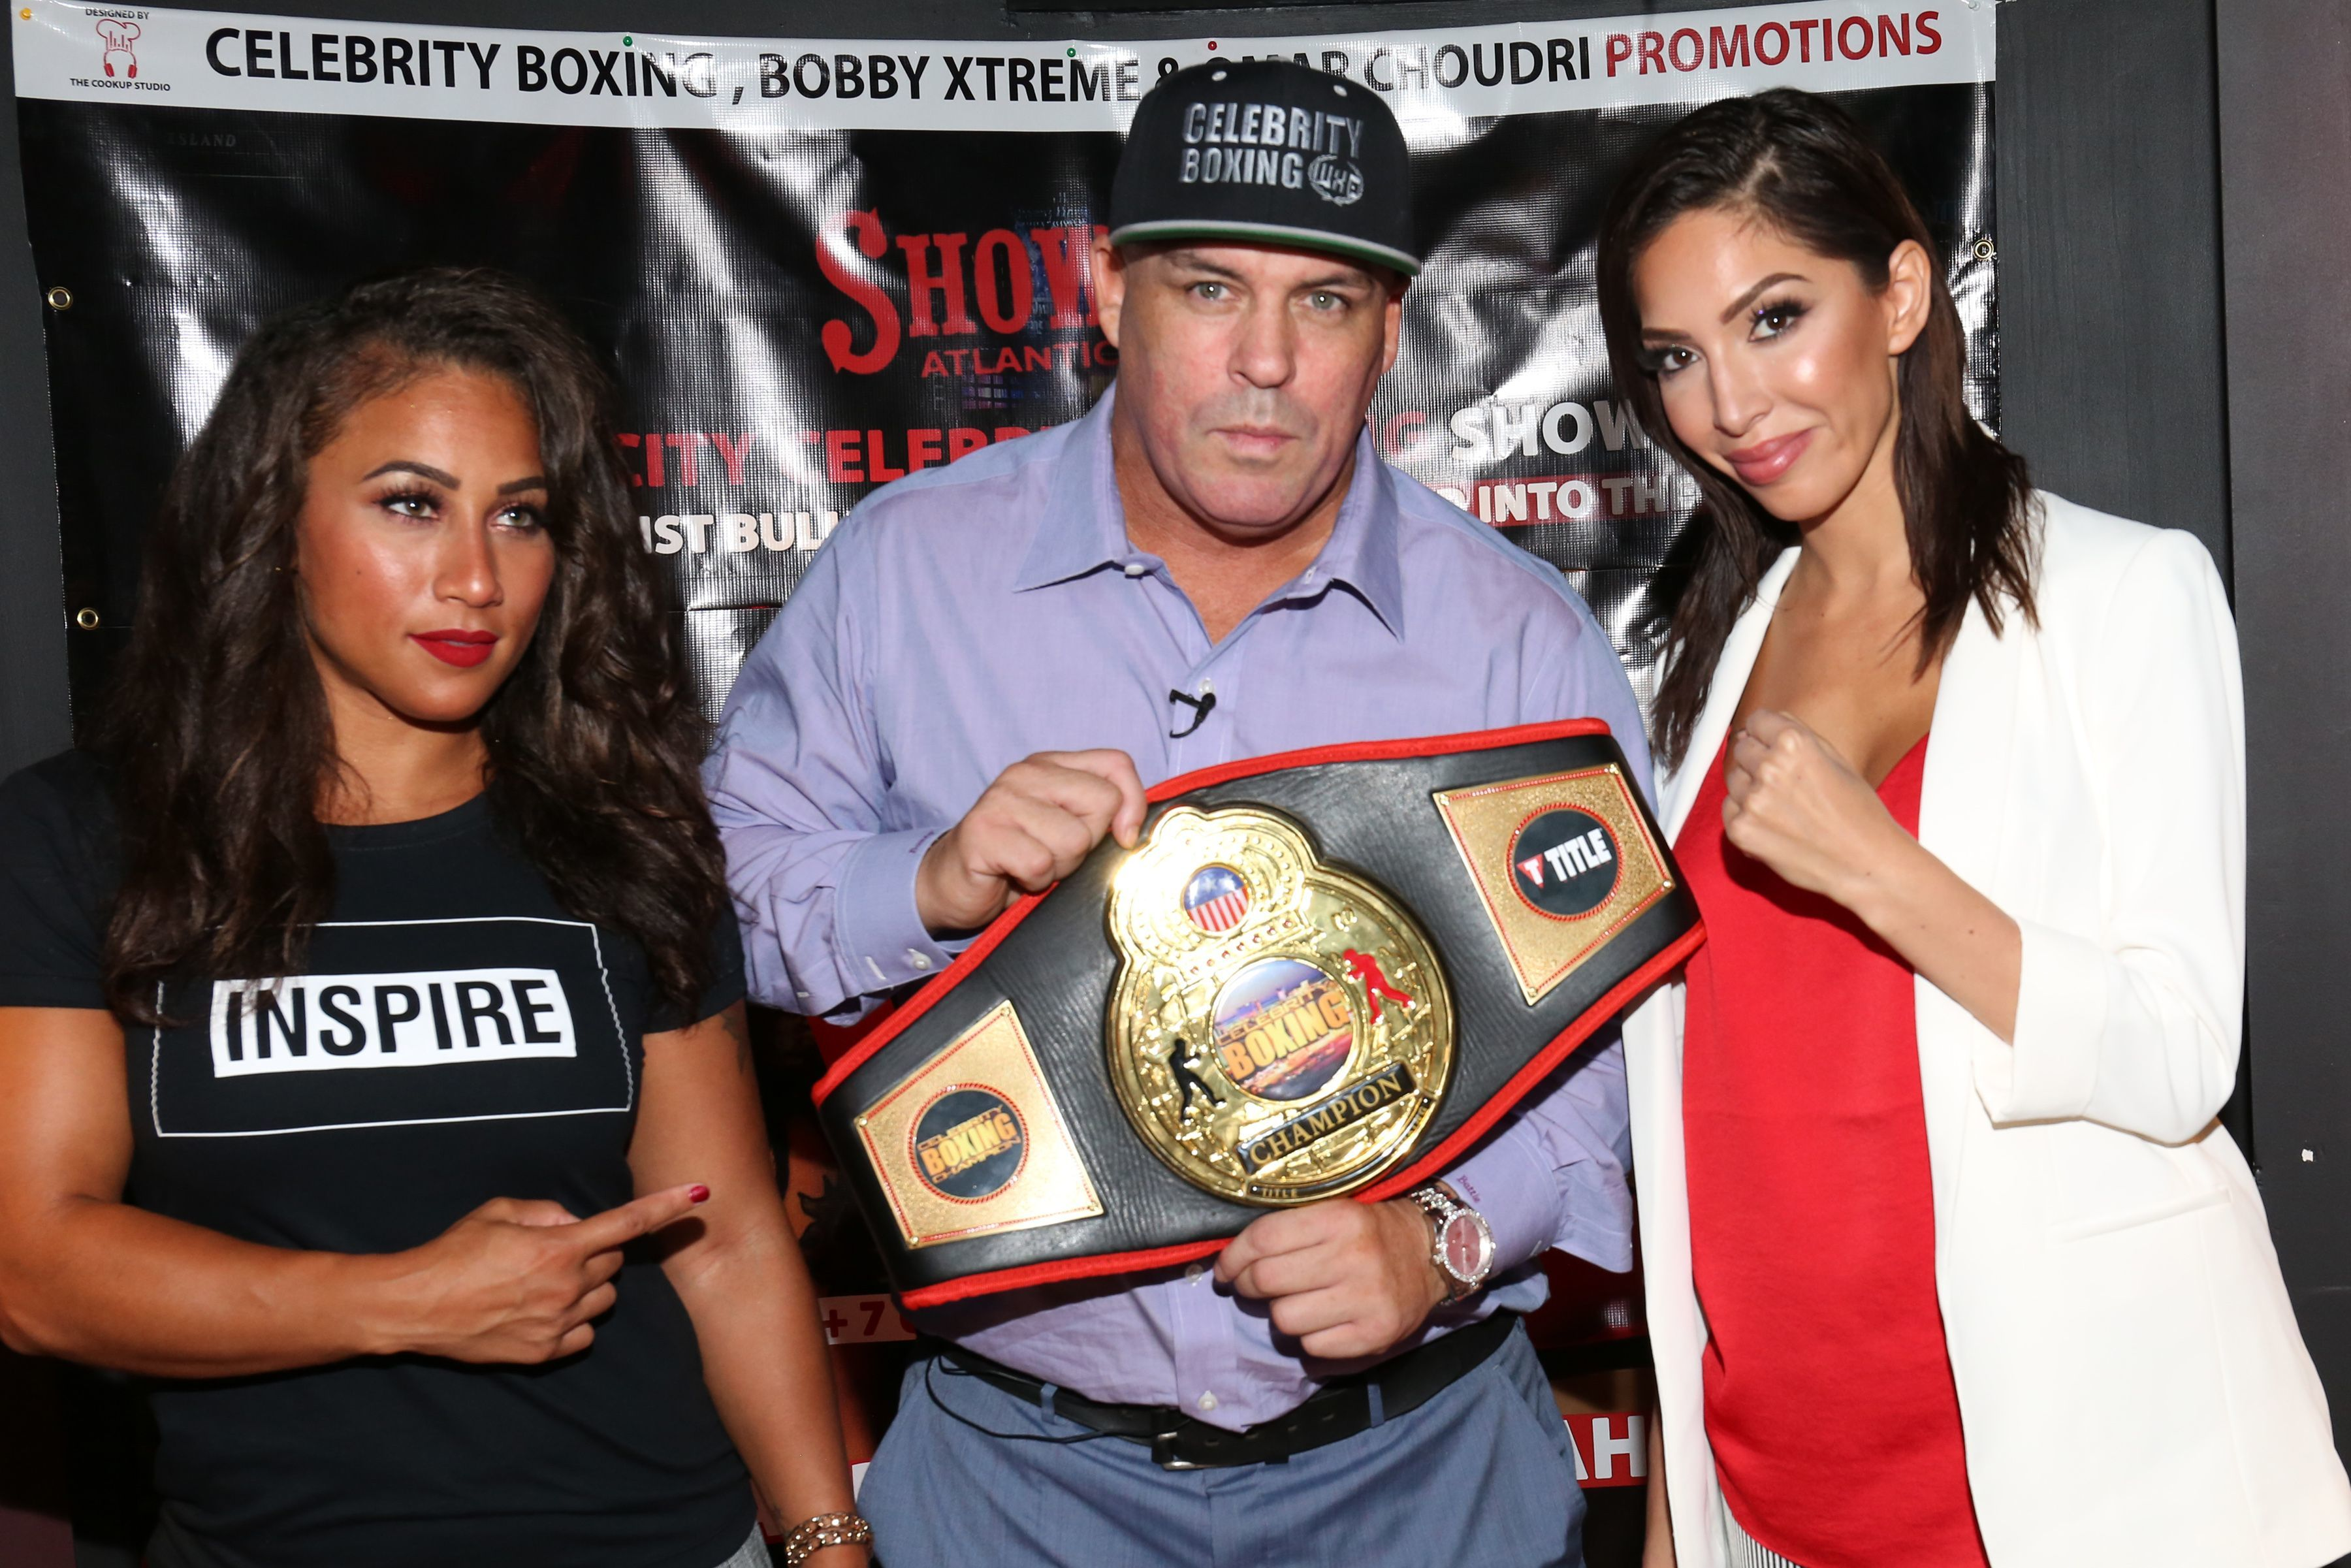 Nicole Alexander, Damon Feldman and Farrah Abraham attend the celebrity boxing press preview in New York City on Aug. 21, 2018.